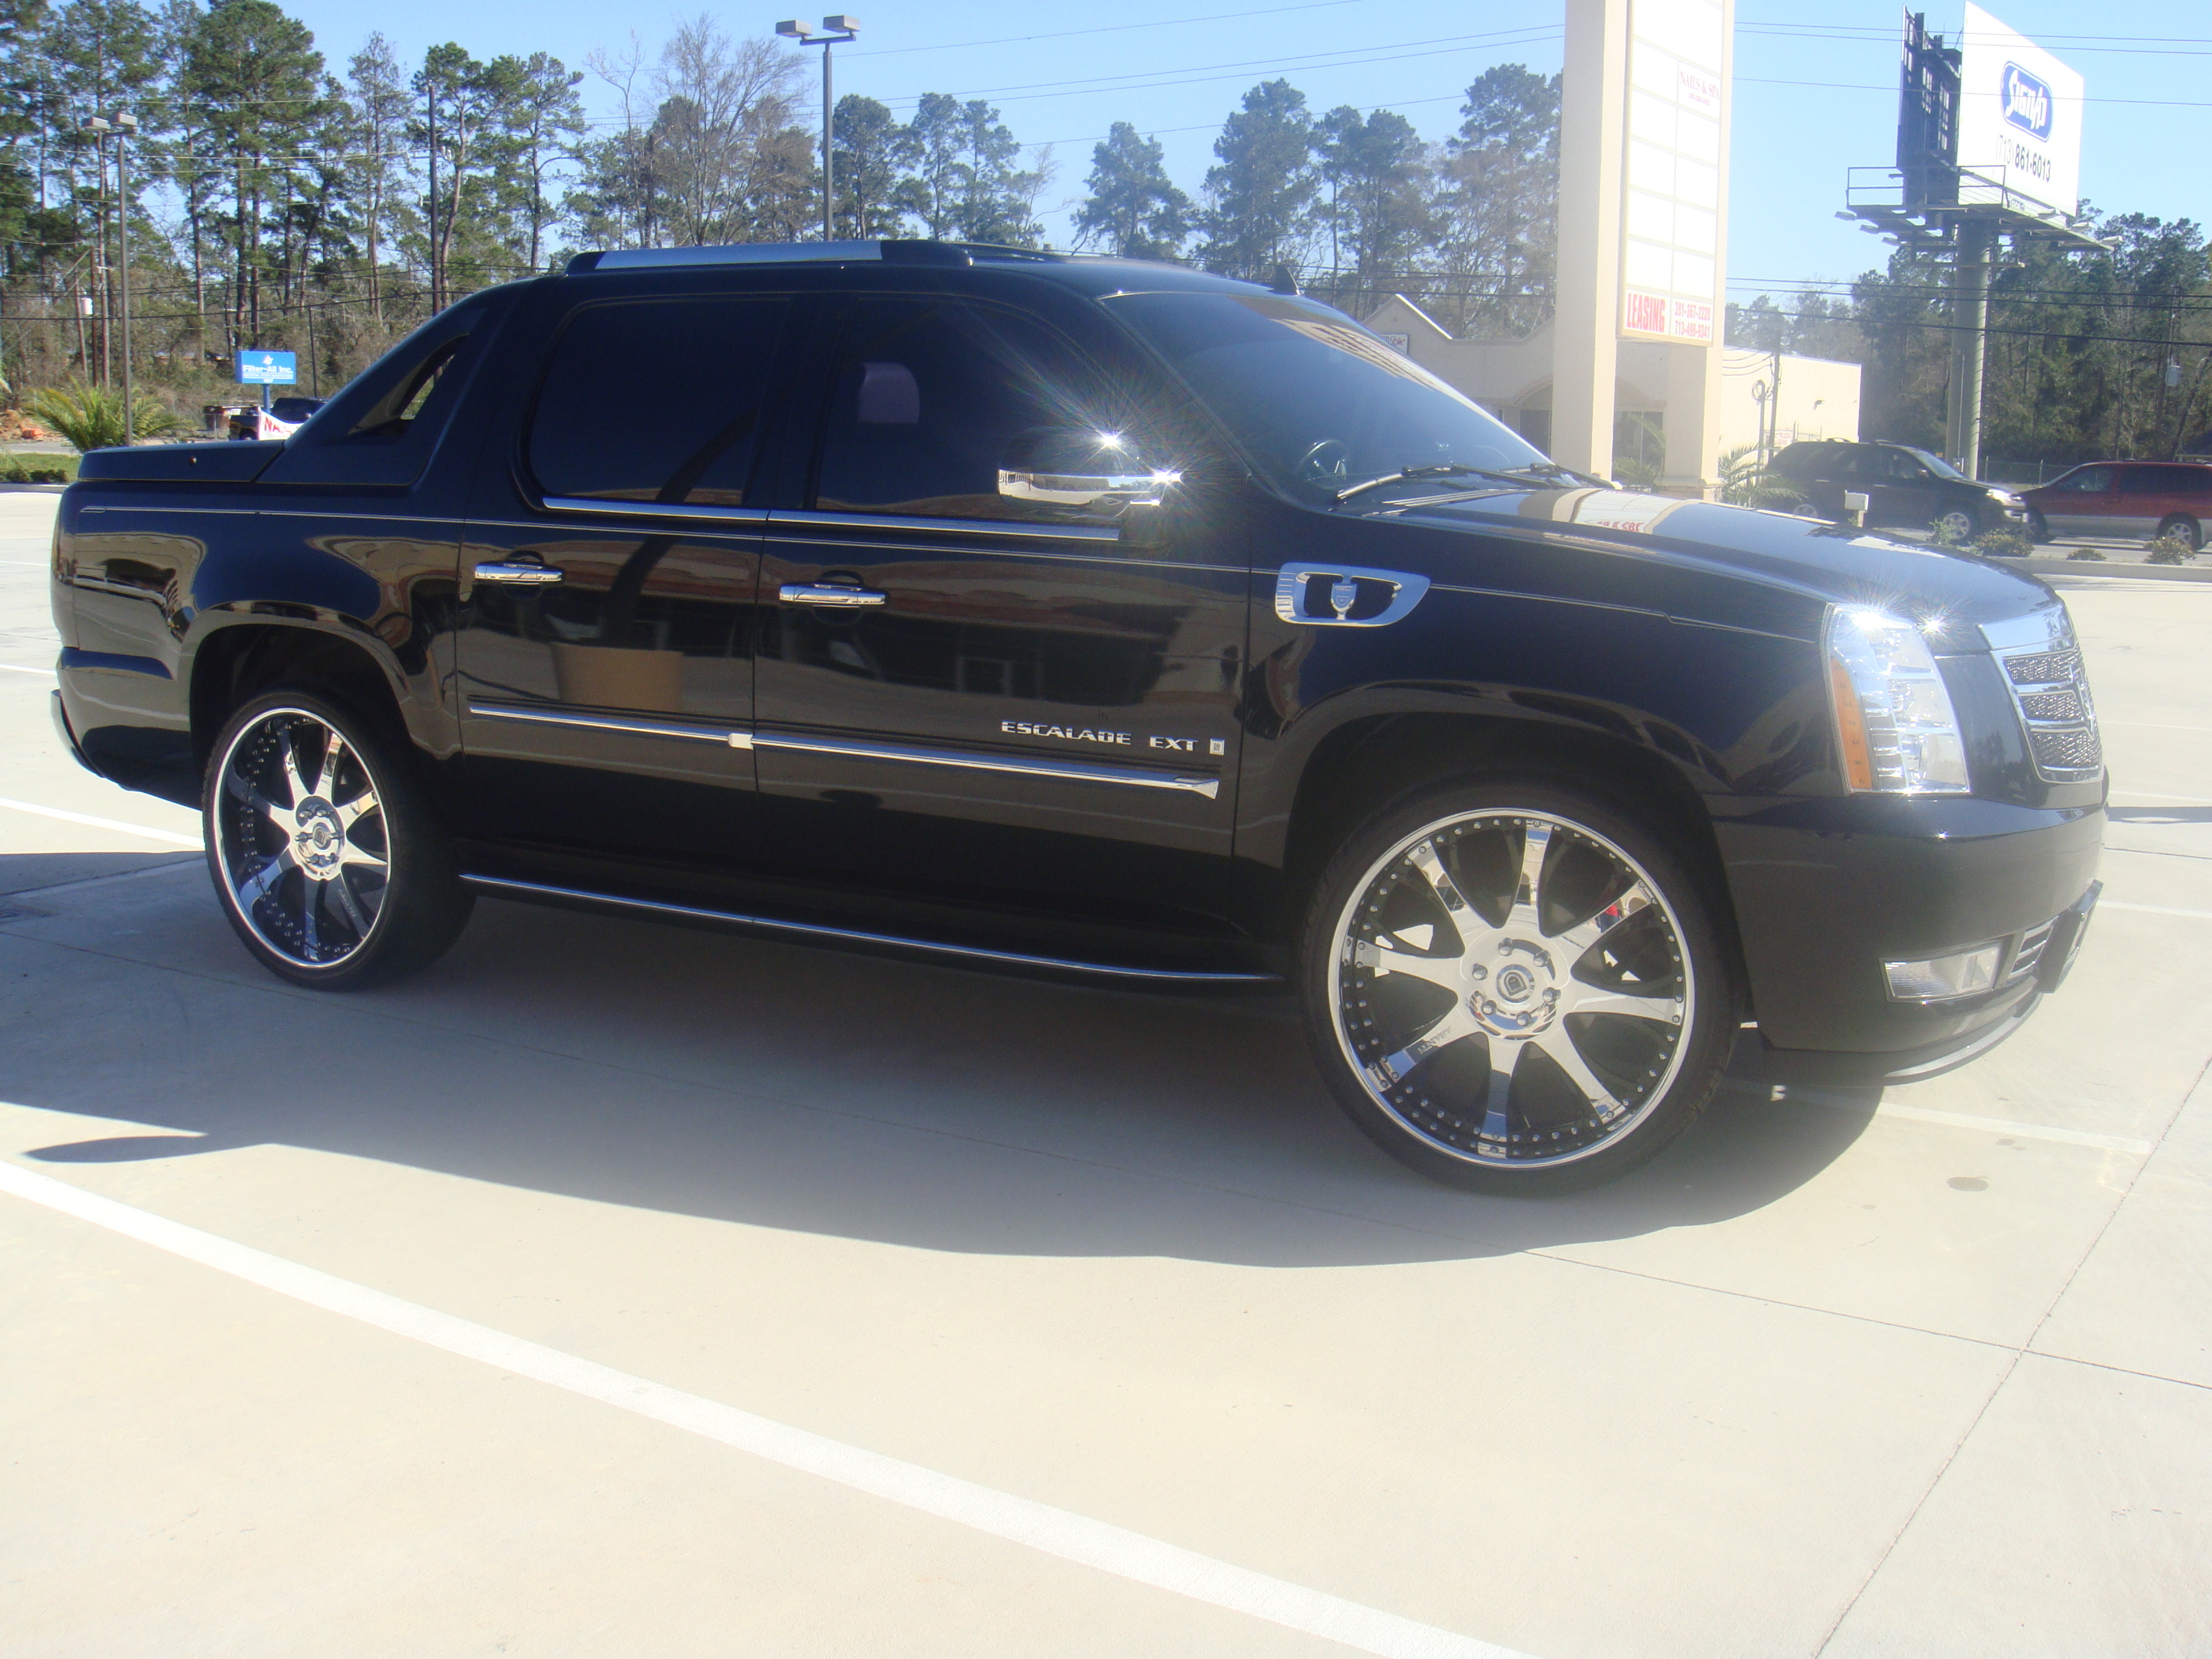 asantiext 39 s 2008 cadillac escalade in houston tx. Black Bedroom Furniture Sets. Home Design Ideas